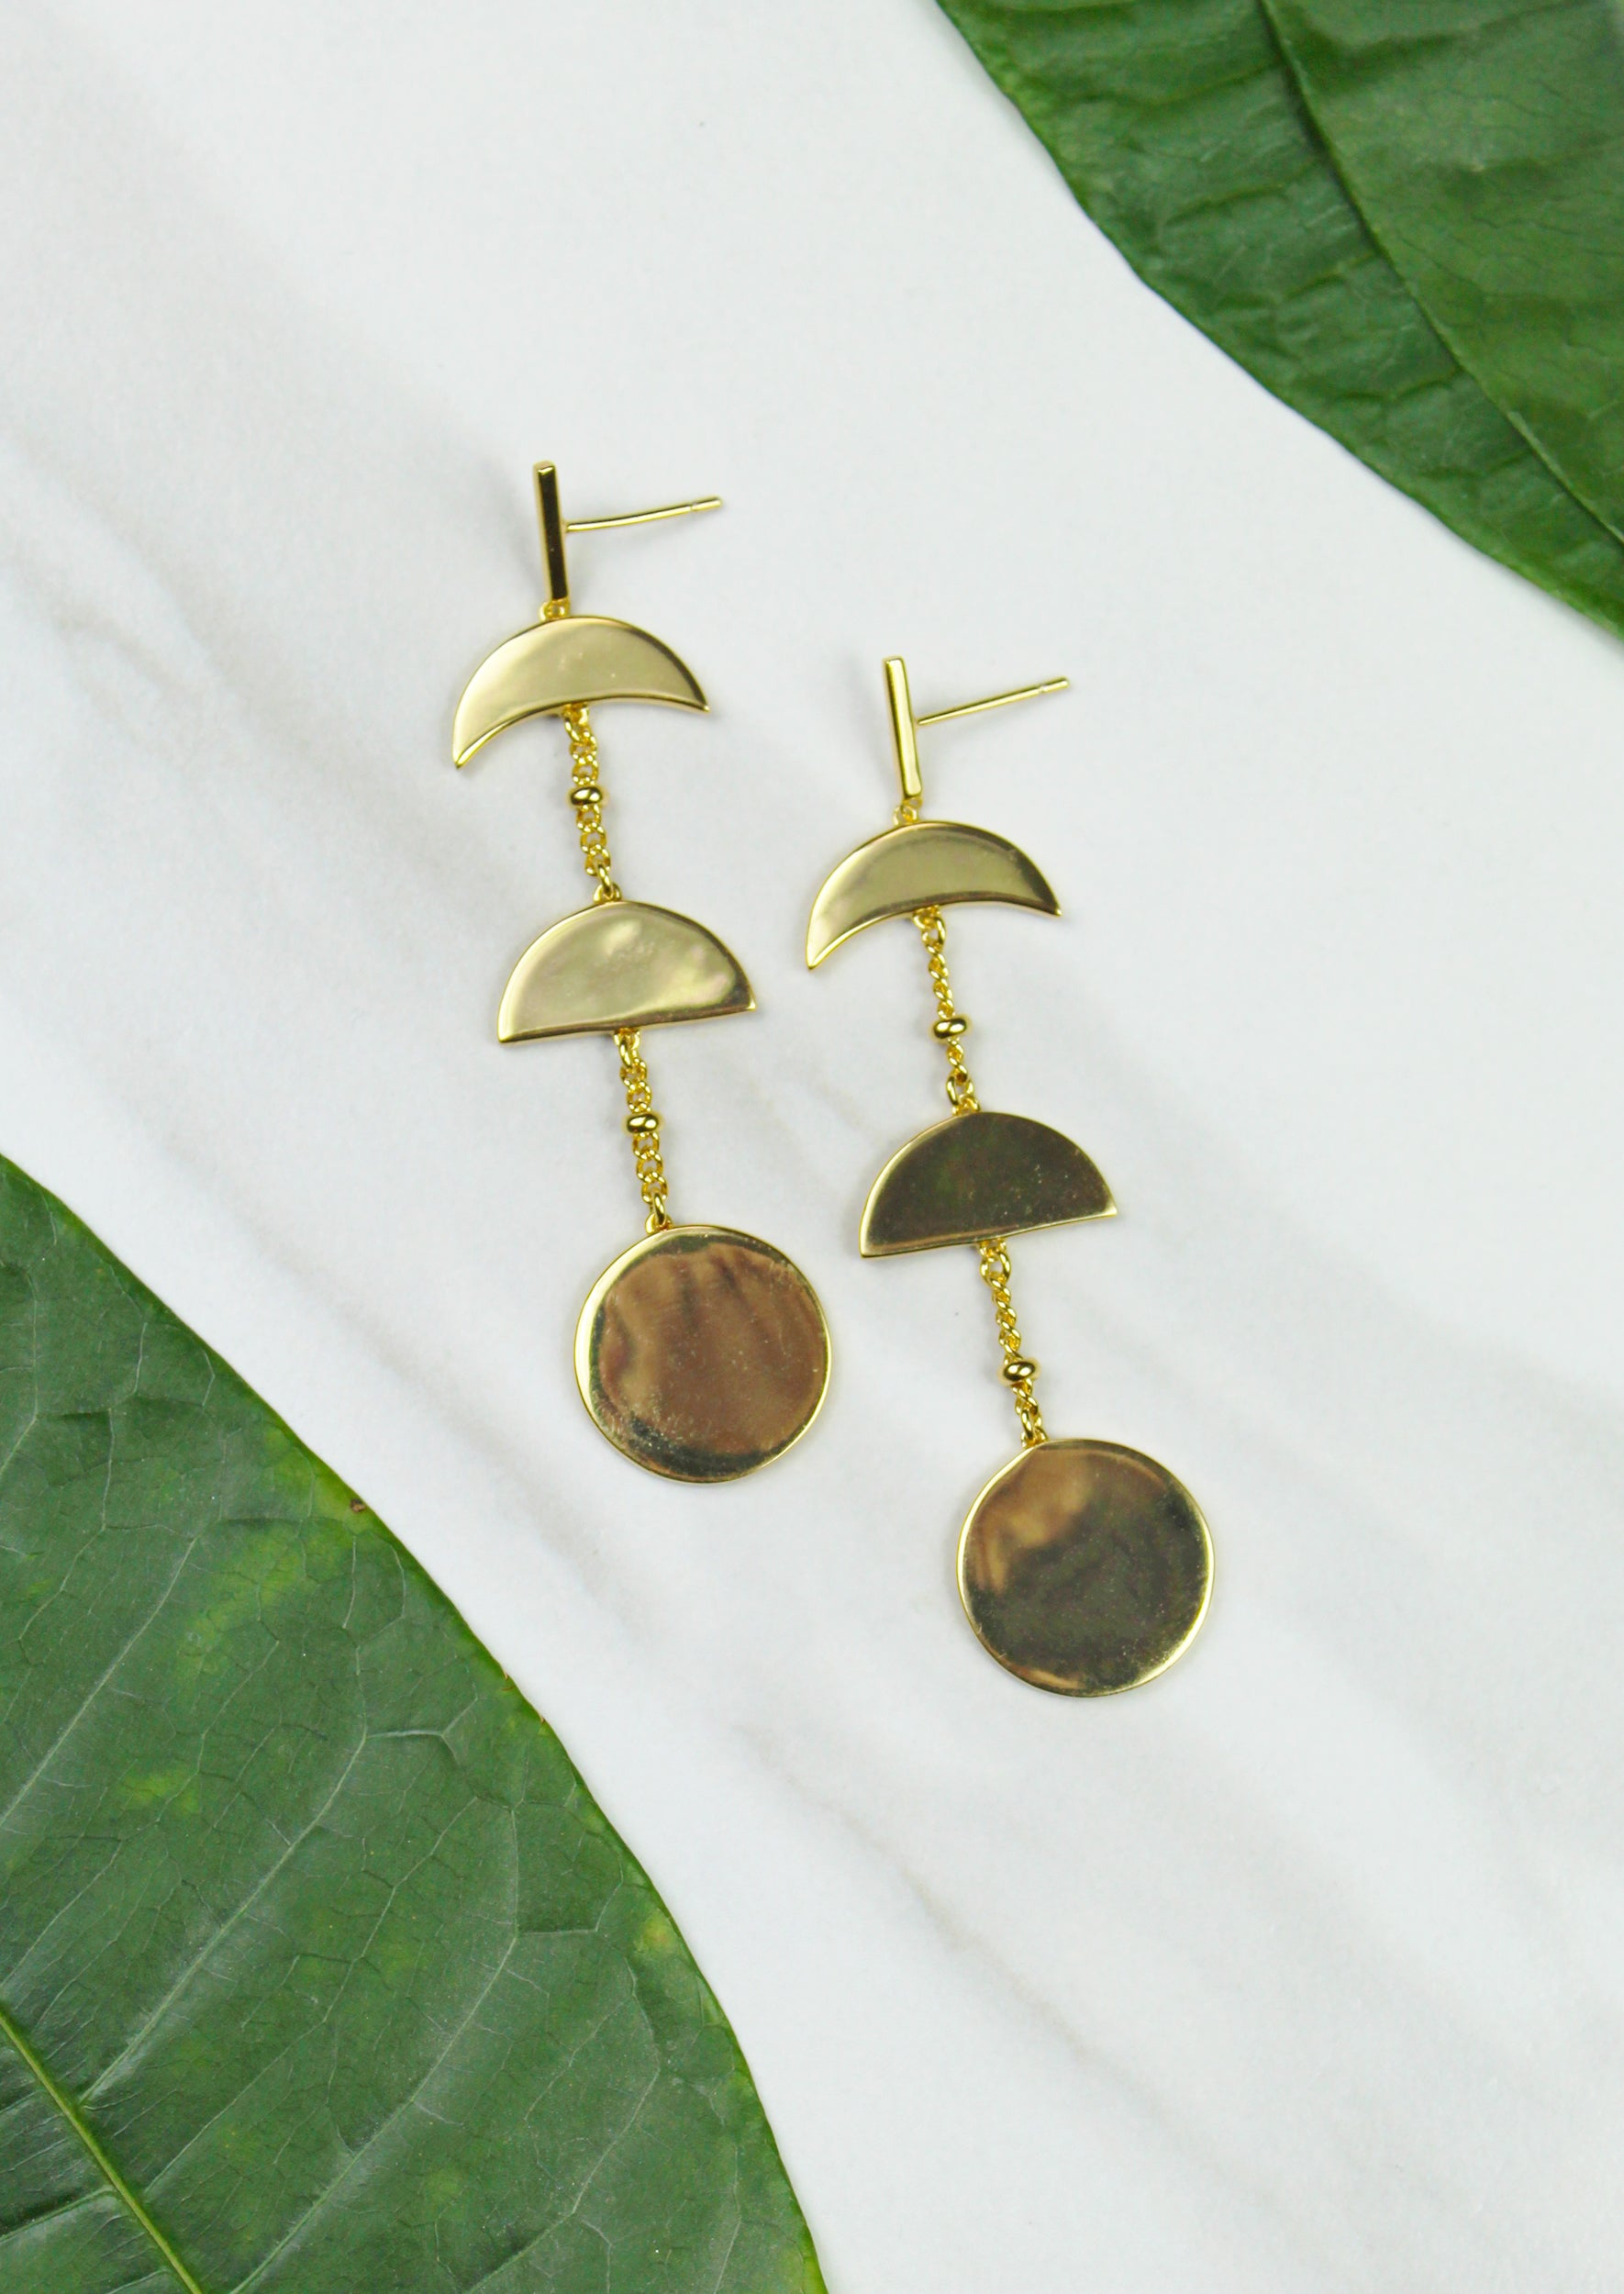 Moon Phase Earrings - Jules Smith - 14K Gold Plated - Boho Jewelry